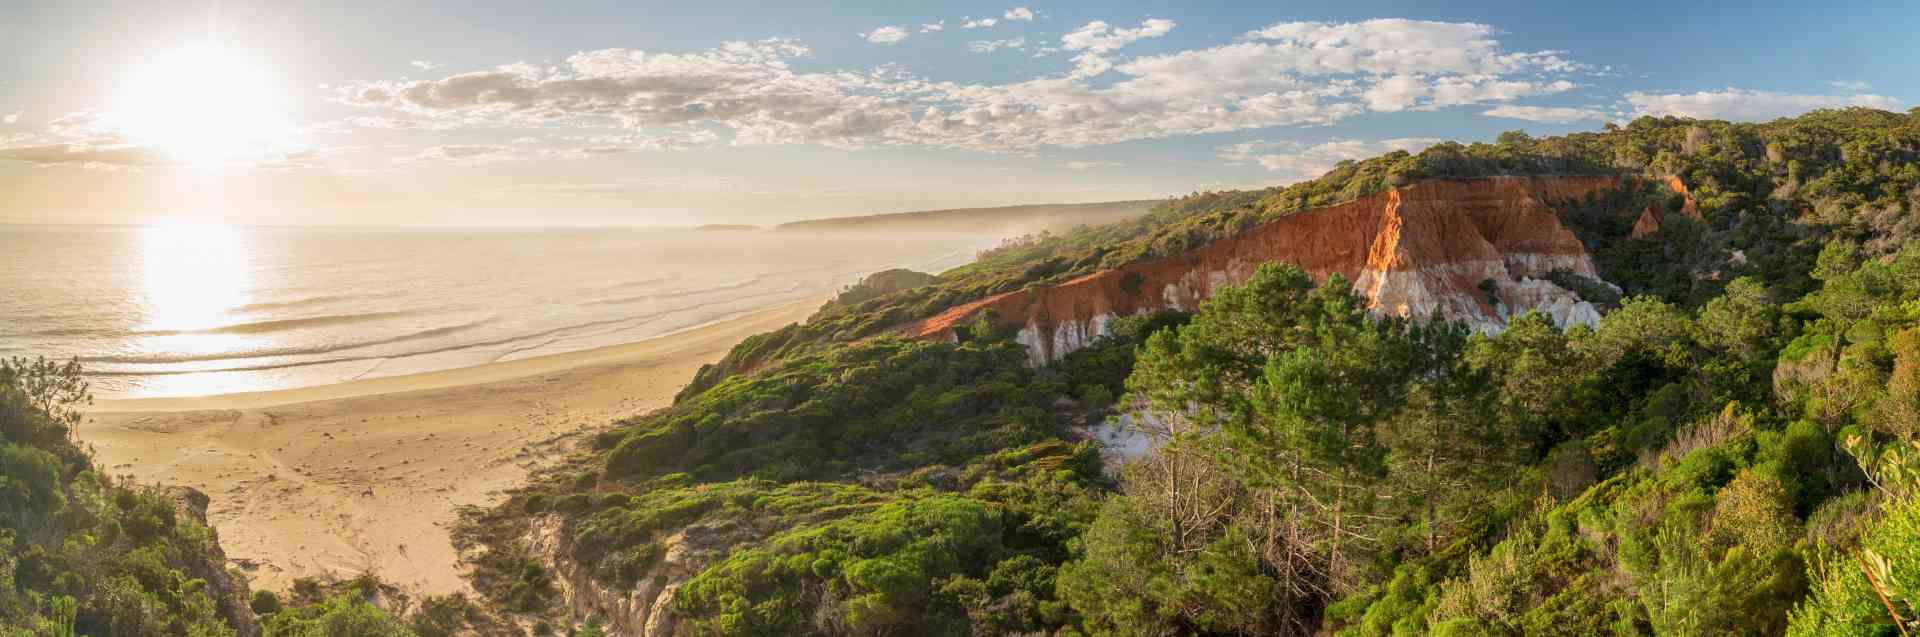 Pinnacles of Ben Boyd National Park, New South Wales by Kramer Photography; www.kramer.photography